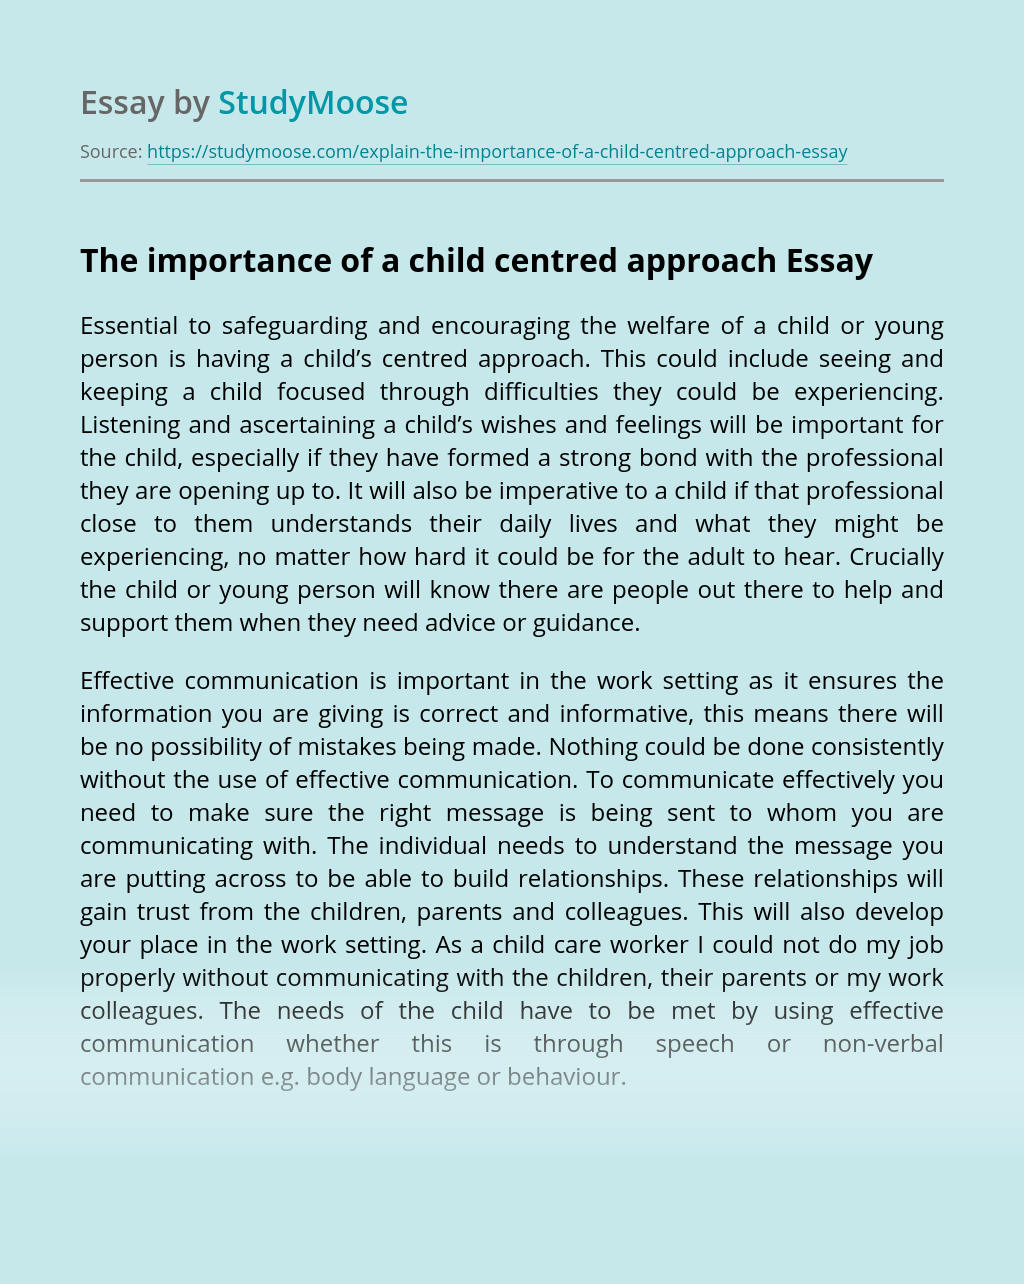 The importance of a child centred approach